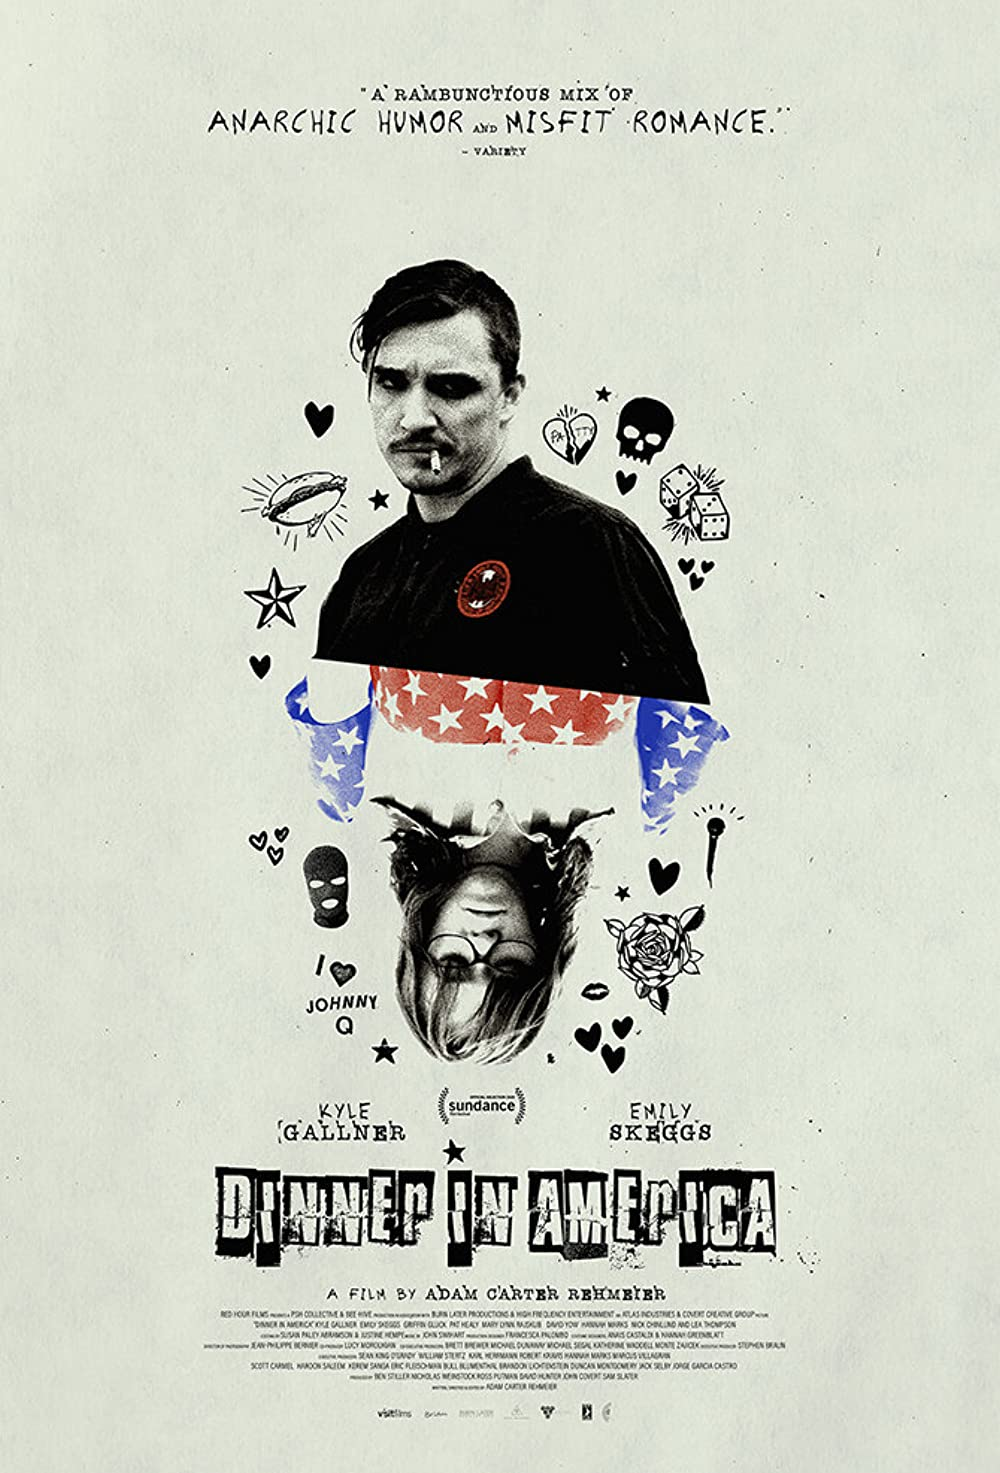 Download Dinner in America (2020) WebRip 720p Dual Audio [Hindi (Voice Over) Dubbed + English] [Full Movie] Full Movie Online On 1xcinema.com